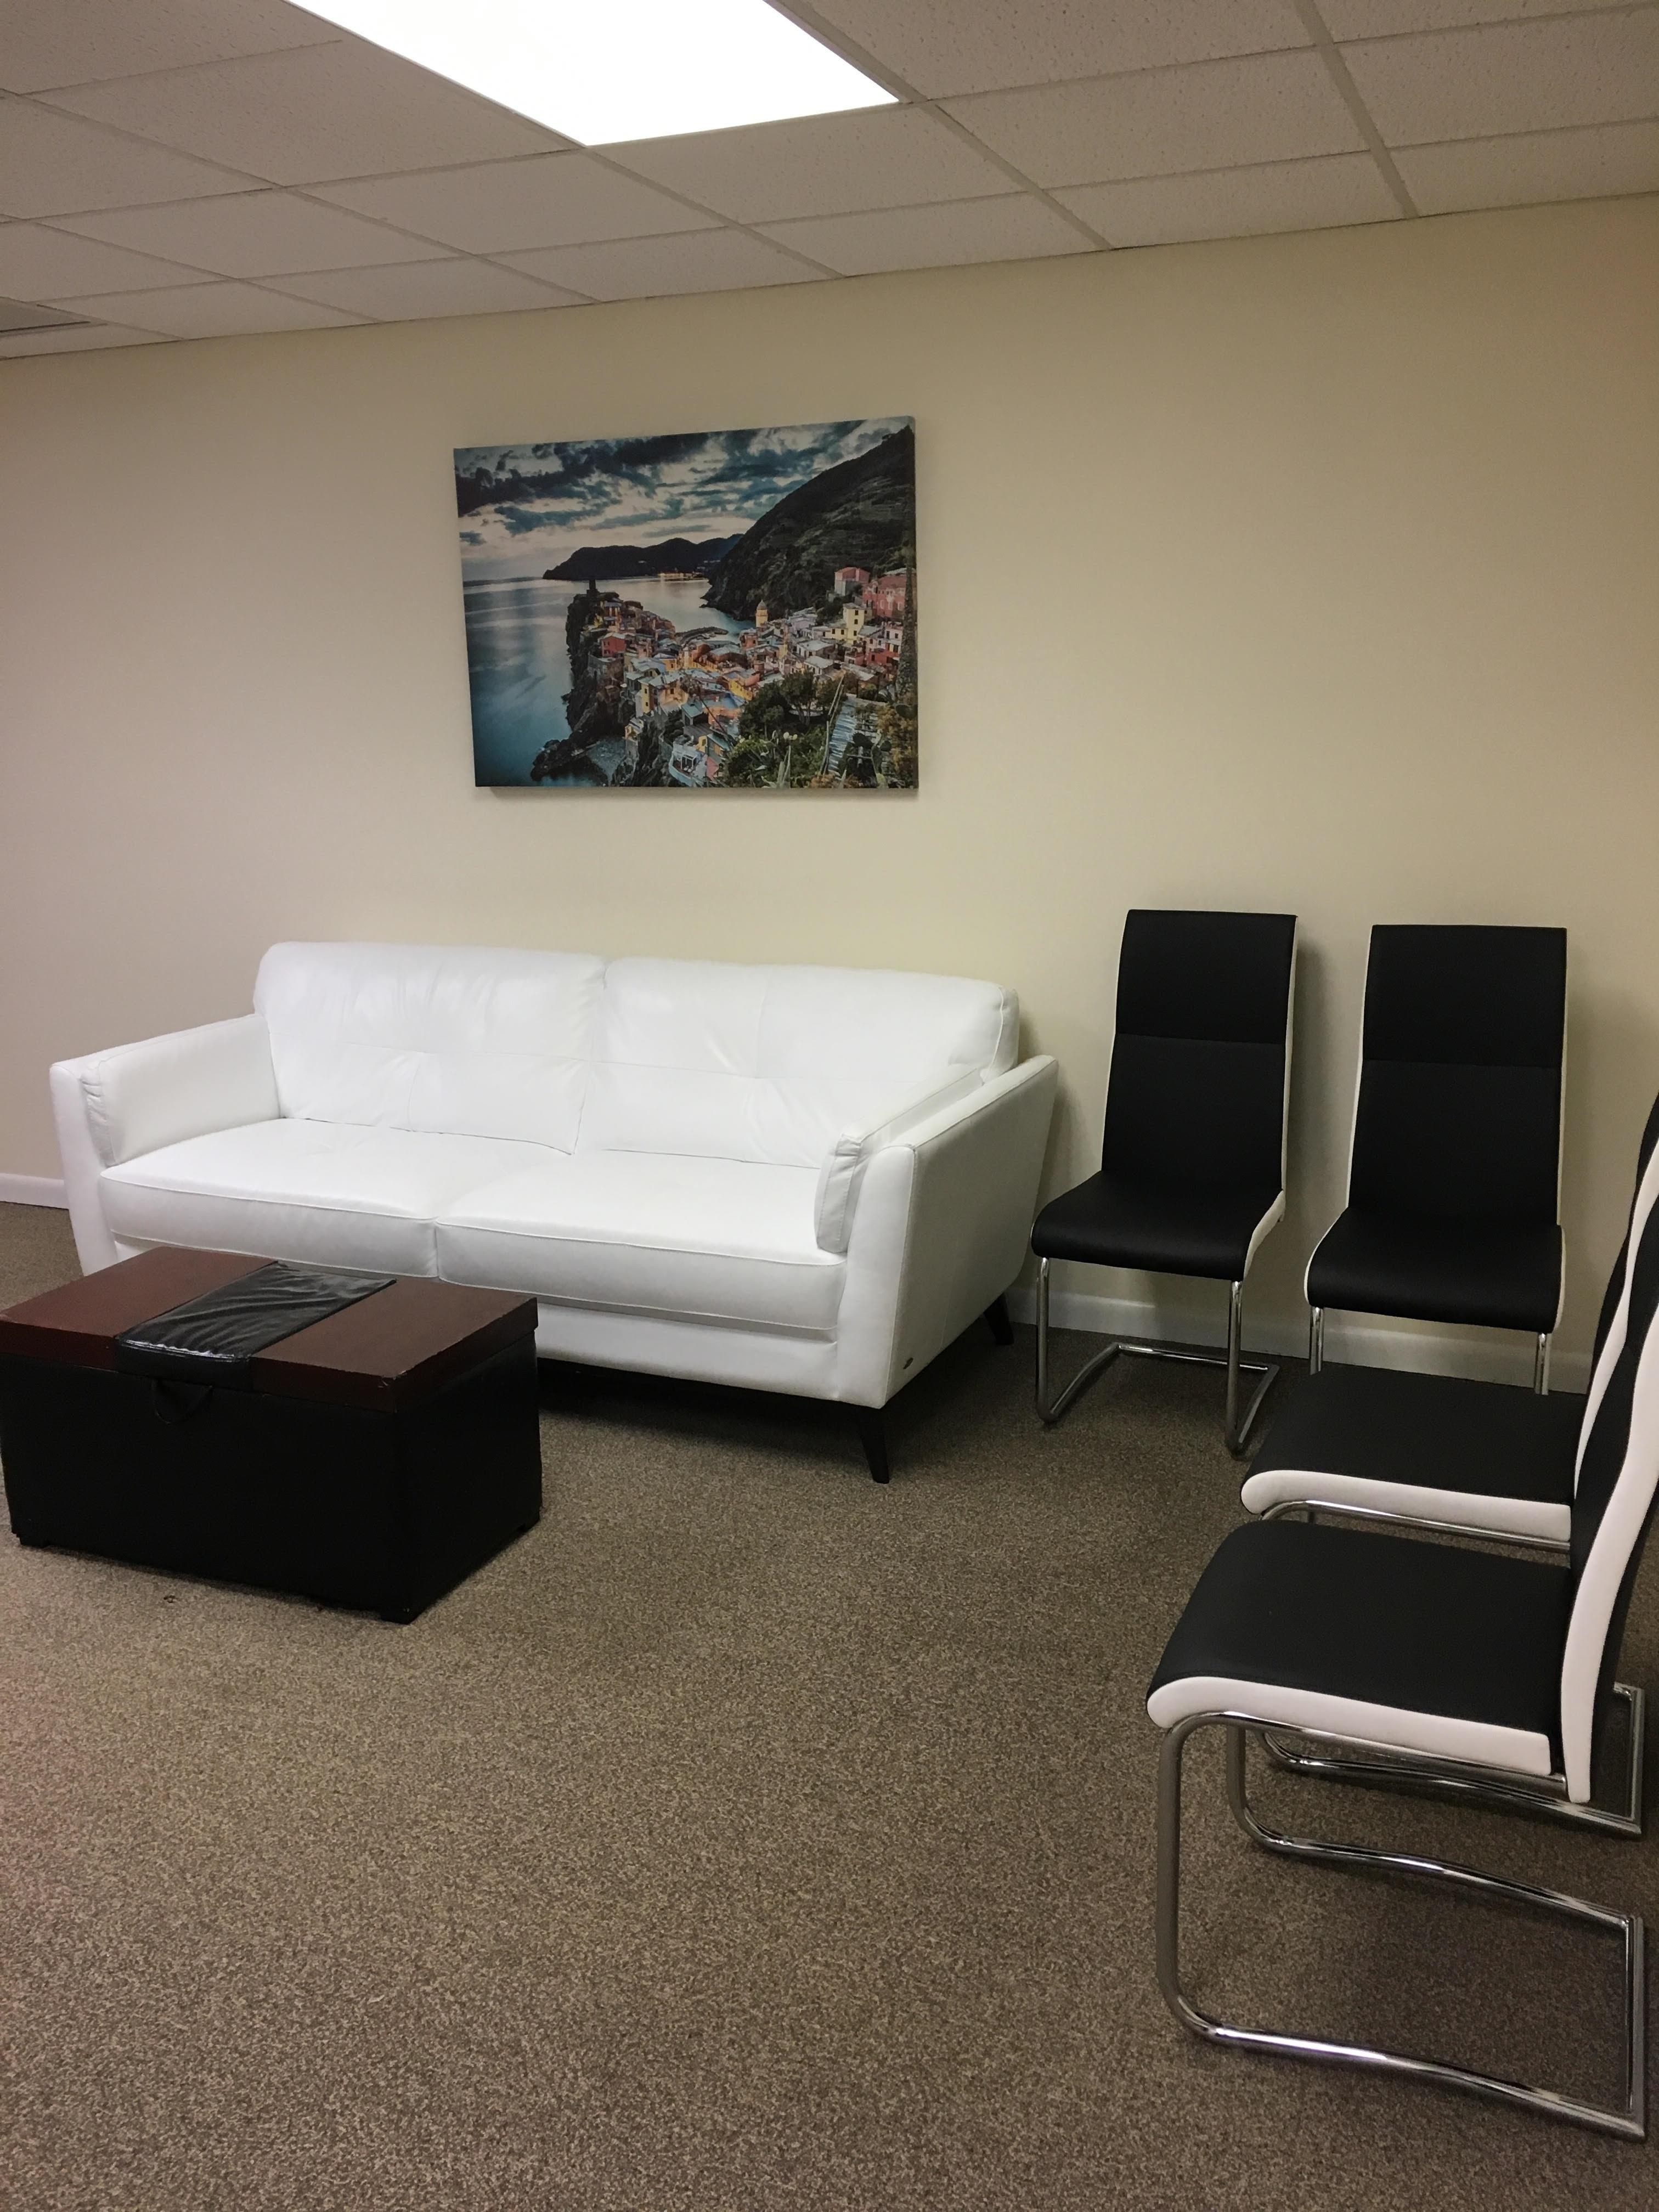 Accountant In A Box - Event Space / Reception Area